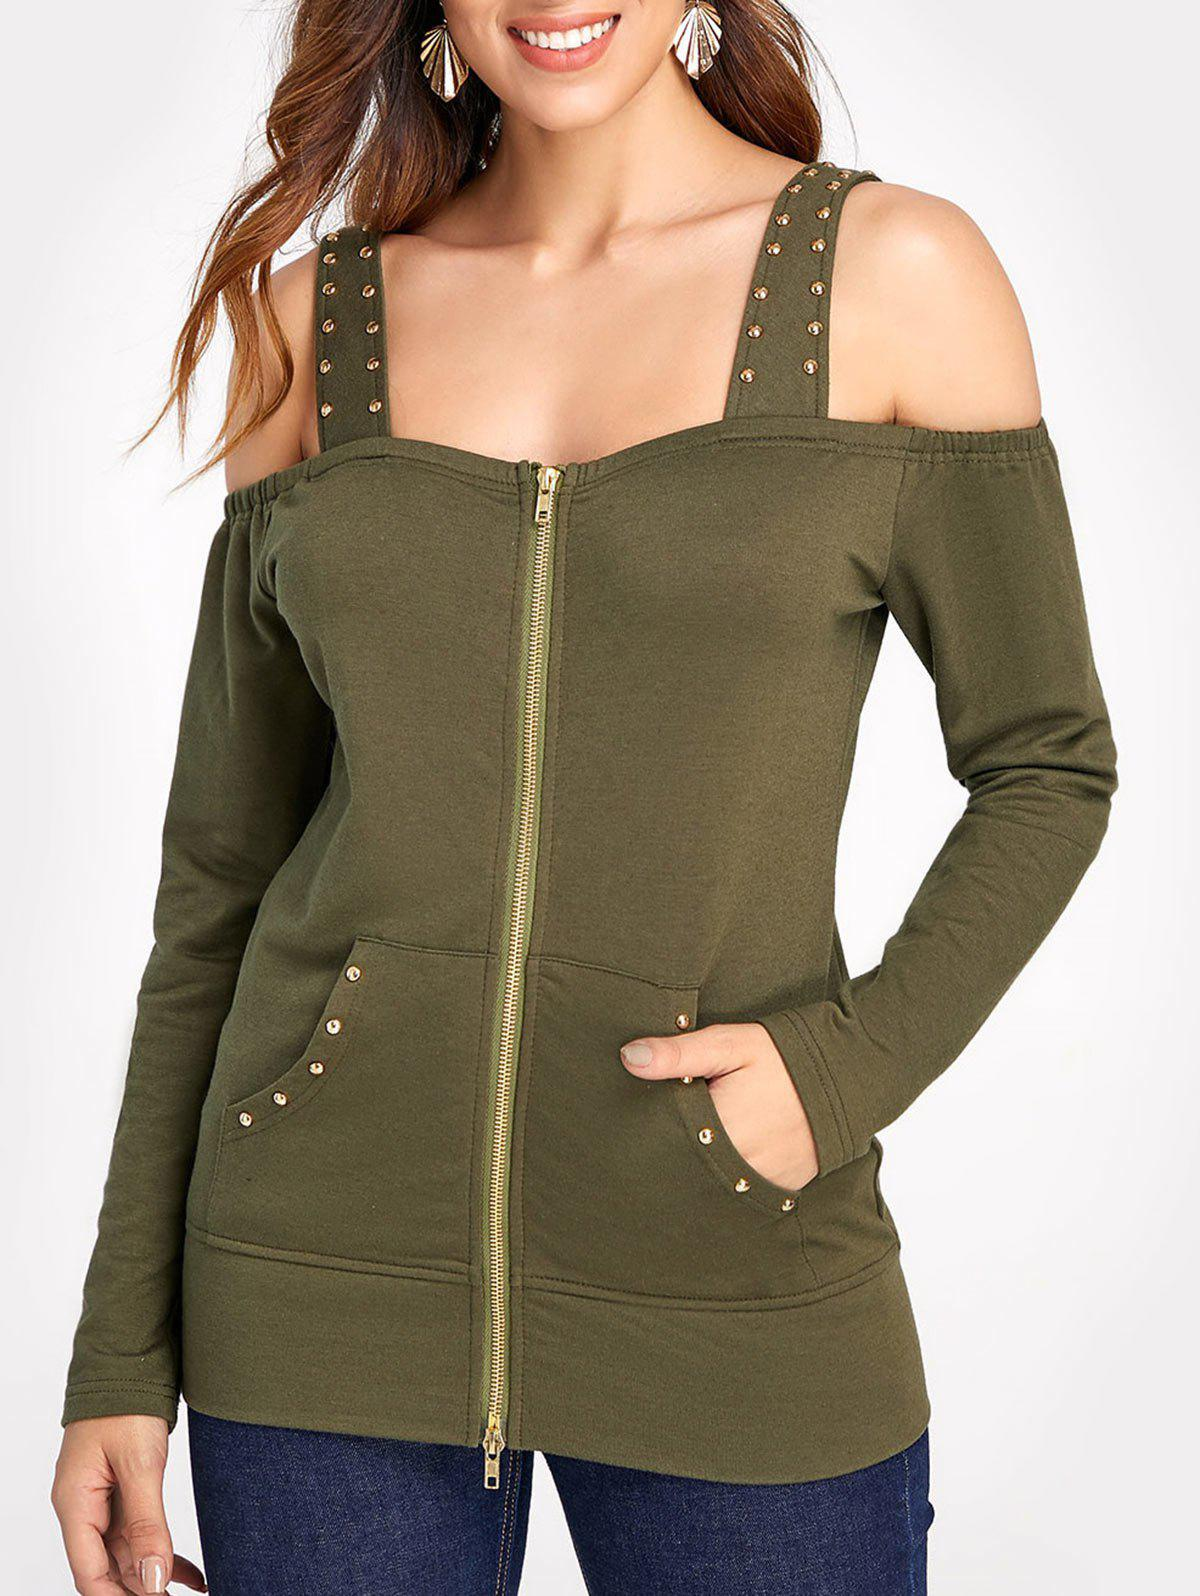 Zipper Fly Sweatshirt with Cold Shoulder - ARMY GREEN M